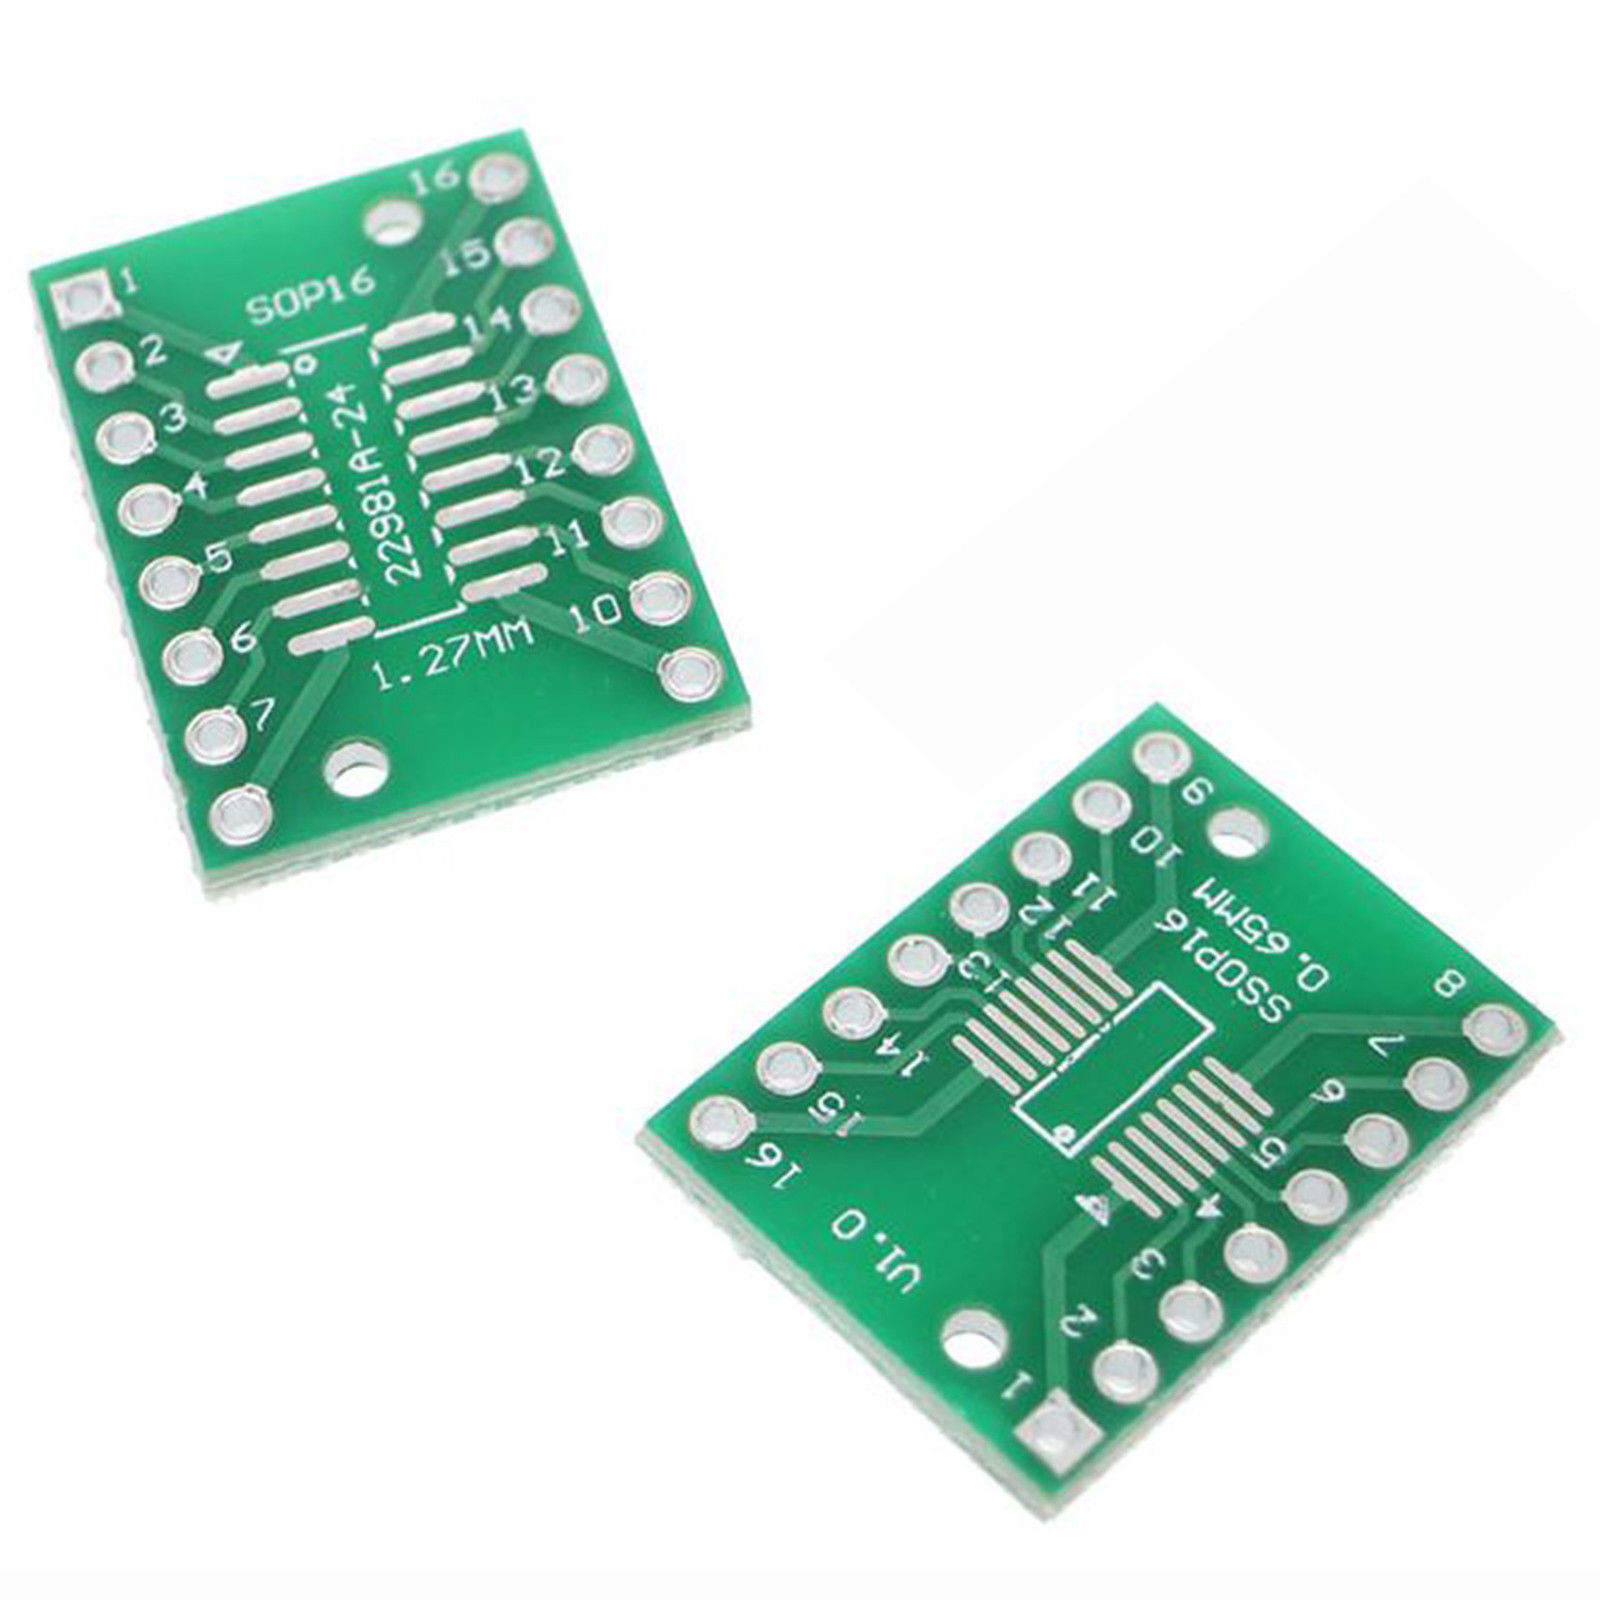 2 X Sop16 S016 Soic16 Tssop16 Msop16 To Dip16 Adapter Board All Small Outline Integrated Circuit Soic And Sop